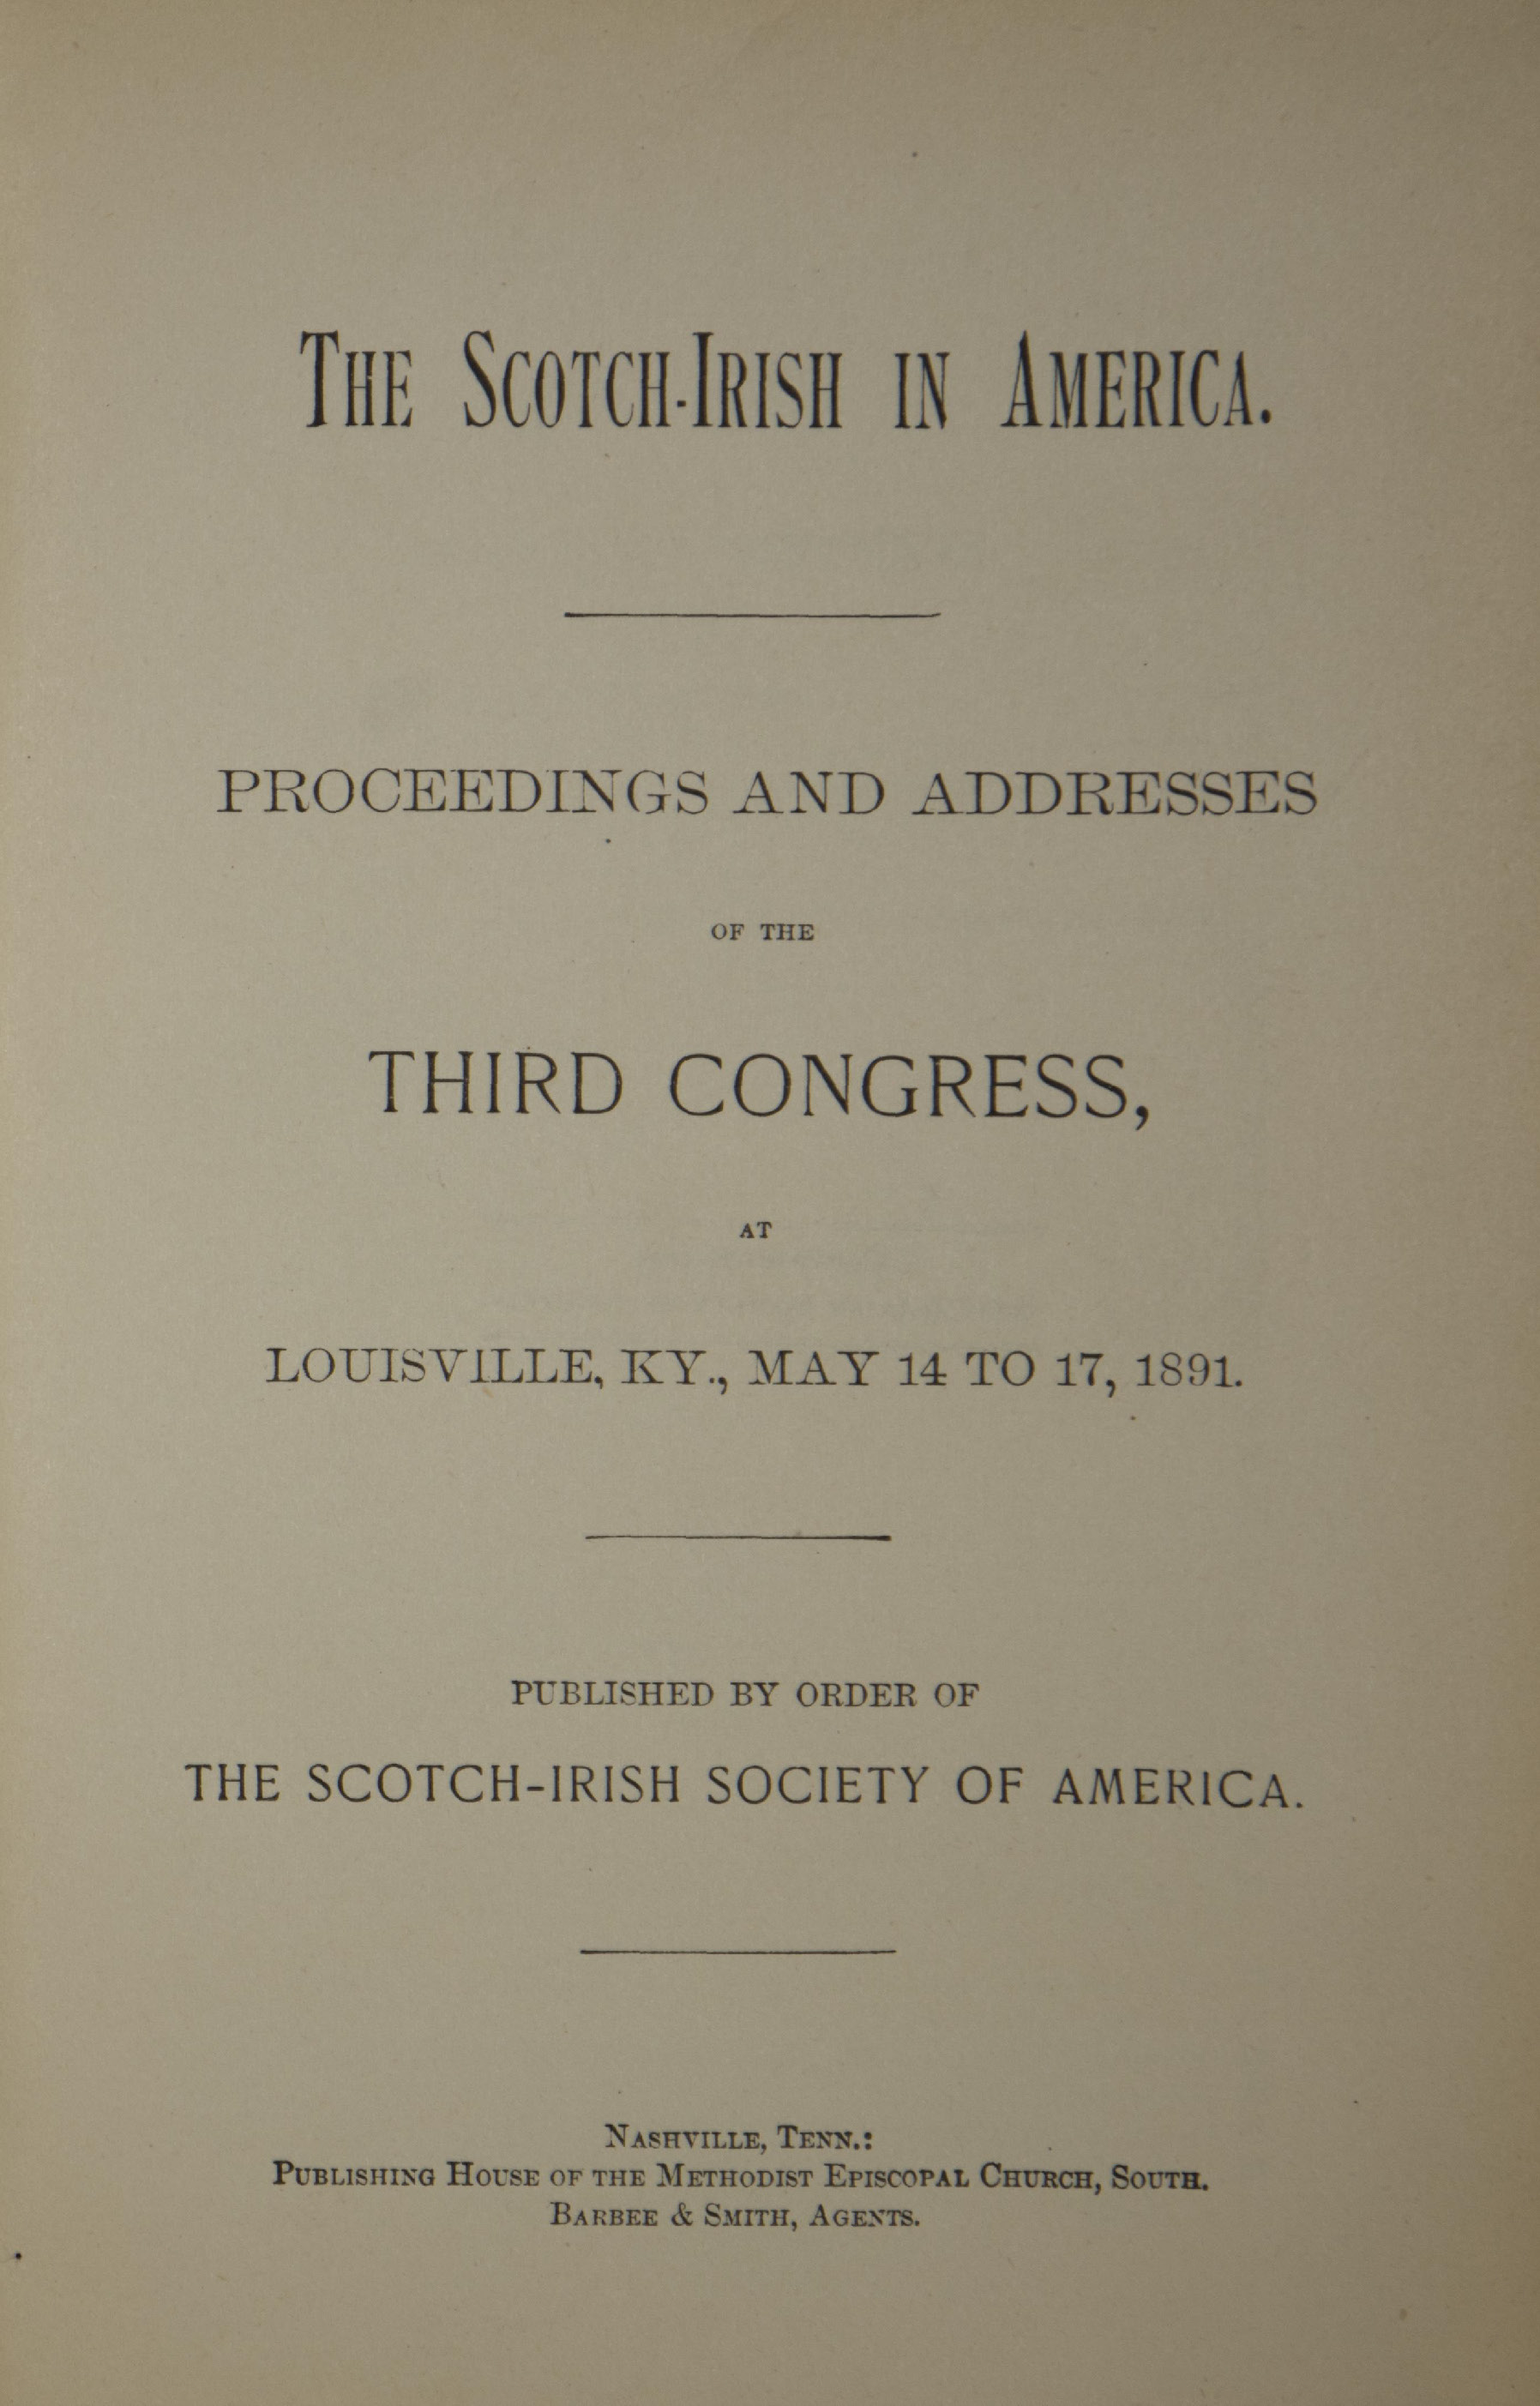 photo of The Scotch-Irish in America, Proceedings and Addresses of the Third Congress May 1891, 1891